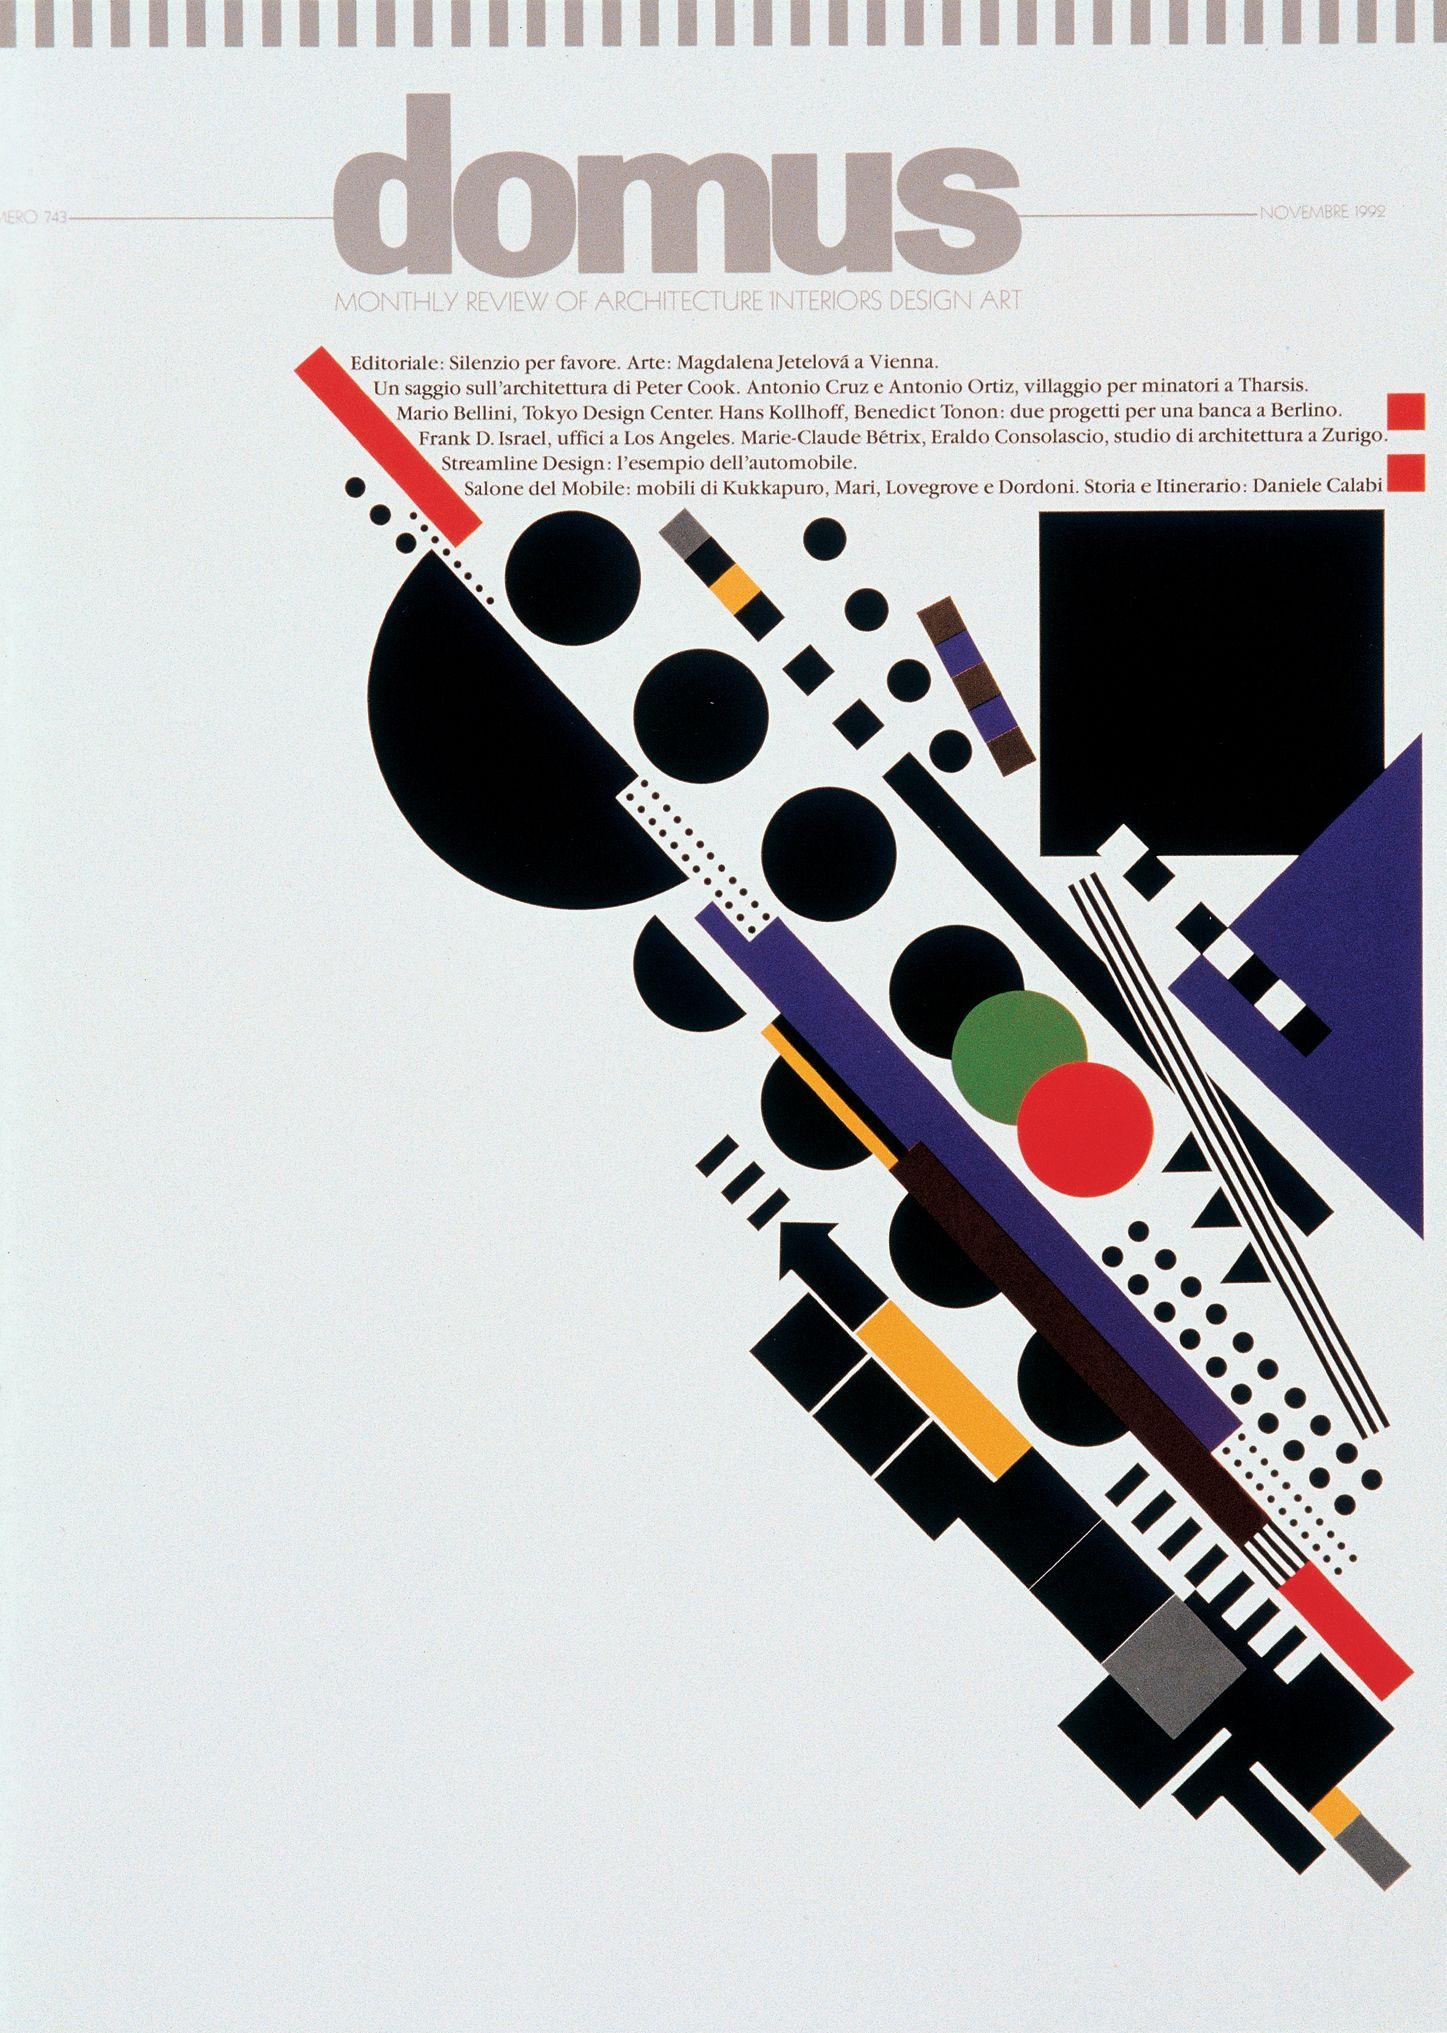 Poster design history - 1995 International Poster Triennale Toyama 1994 Gold Medal Google Search